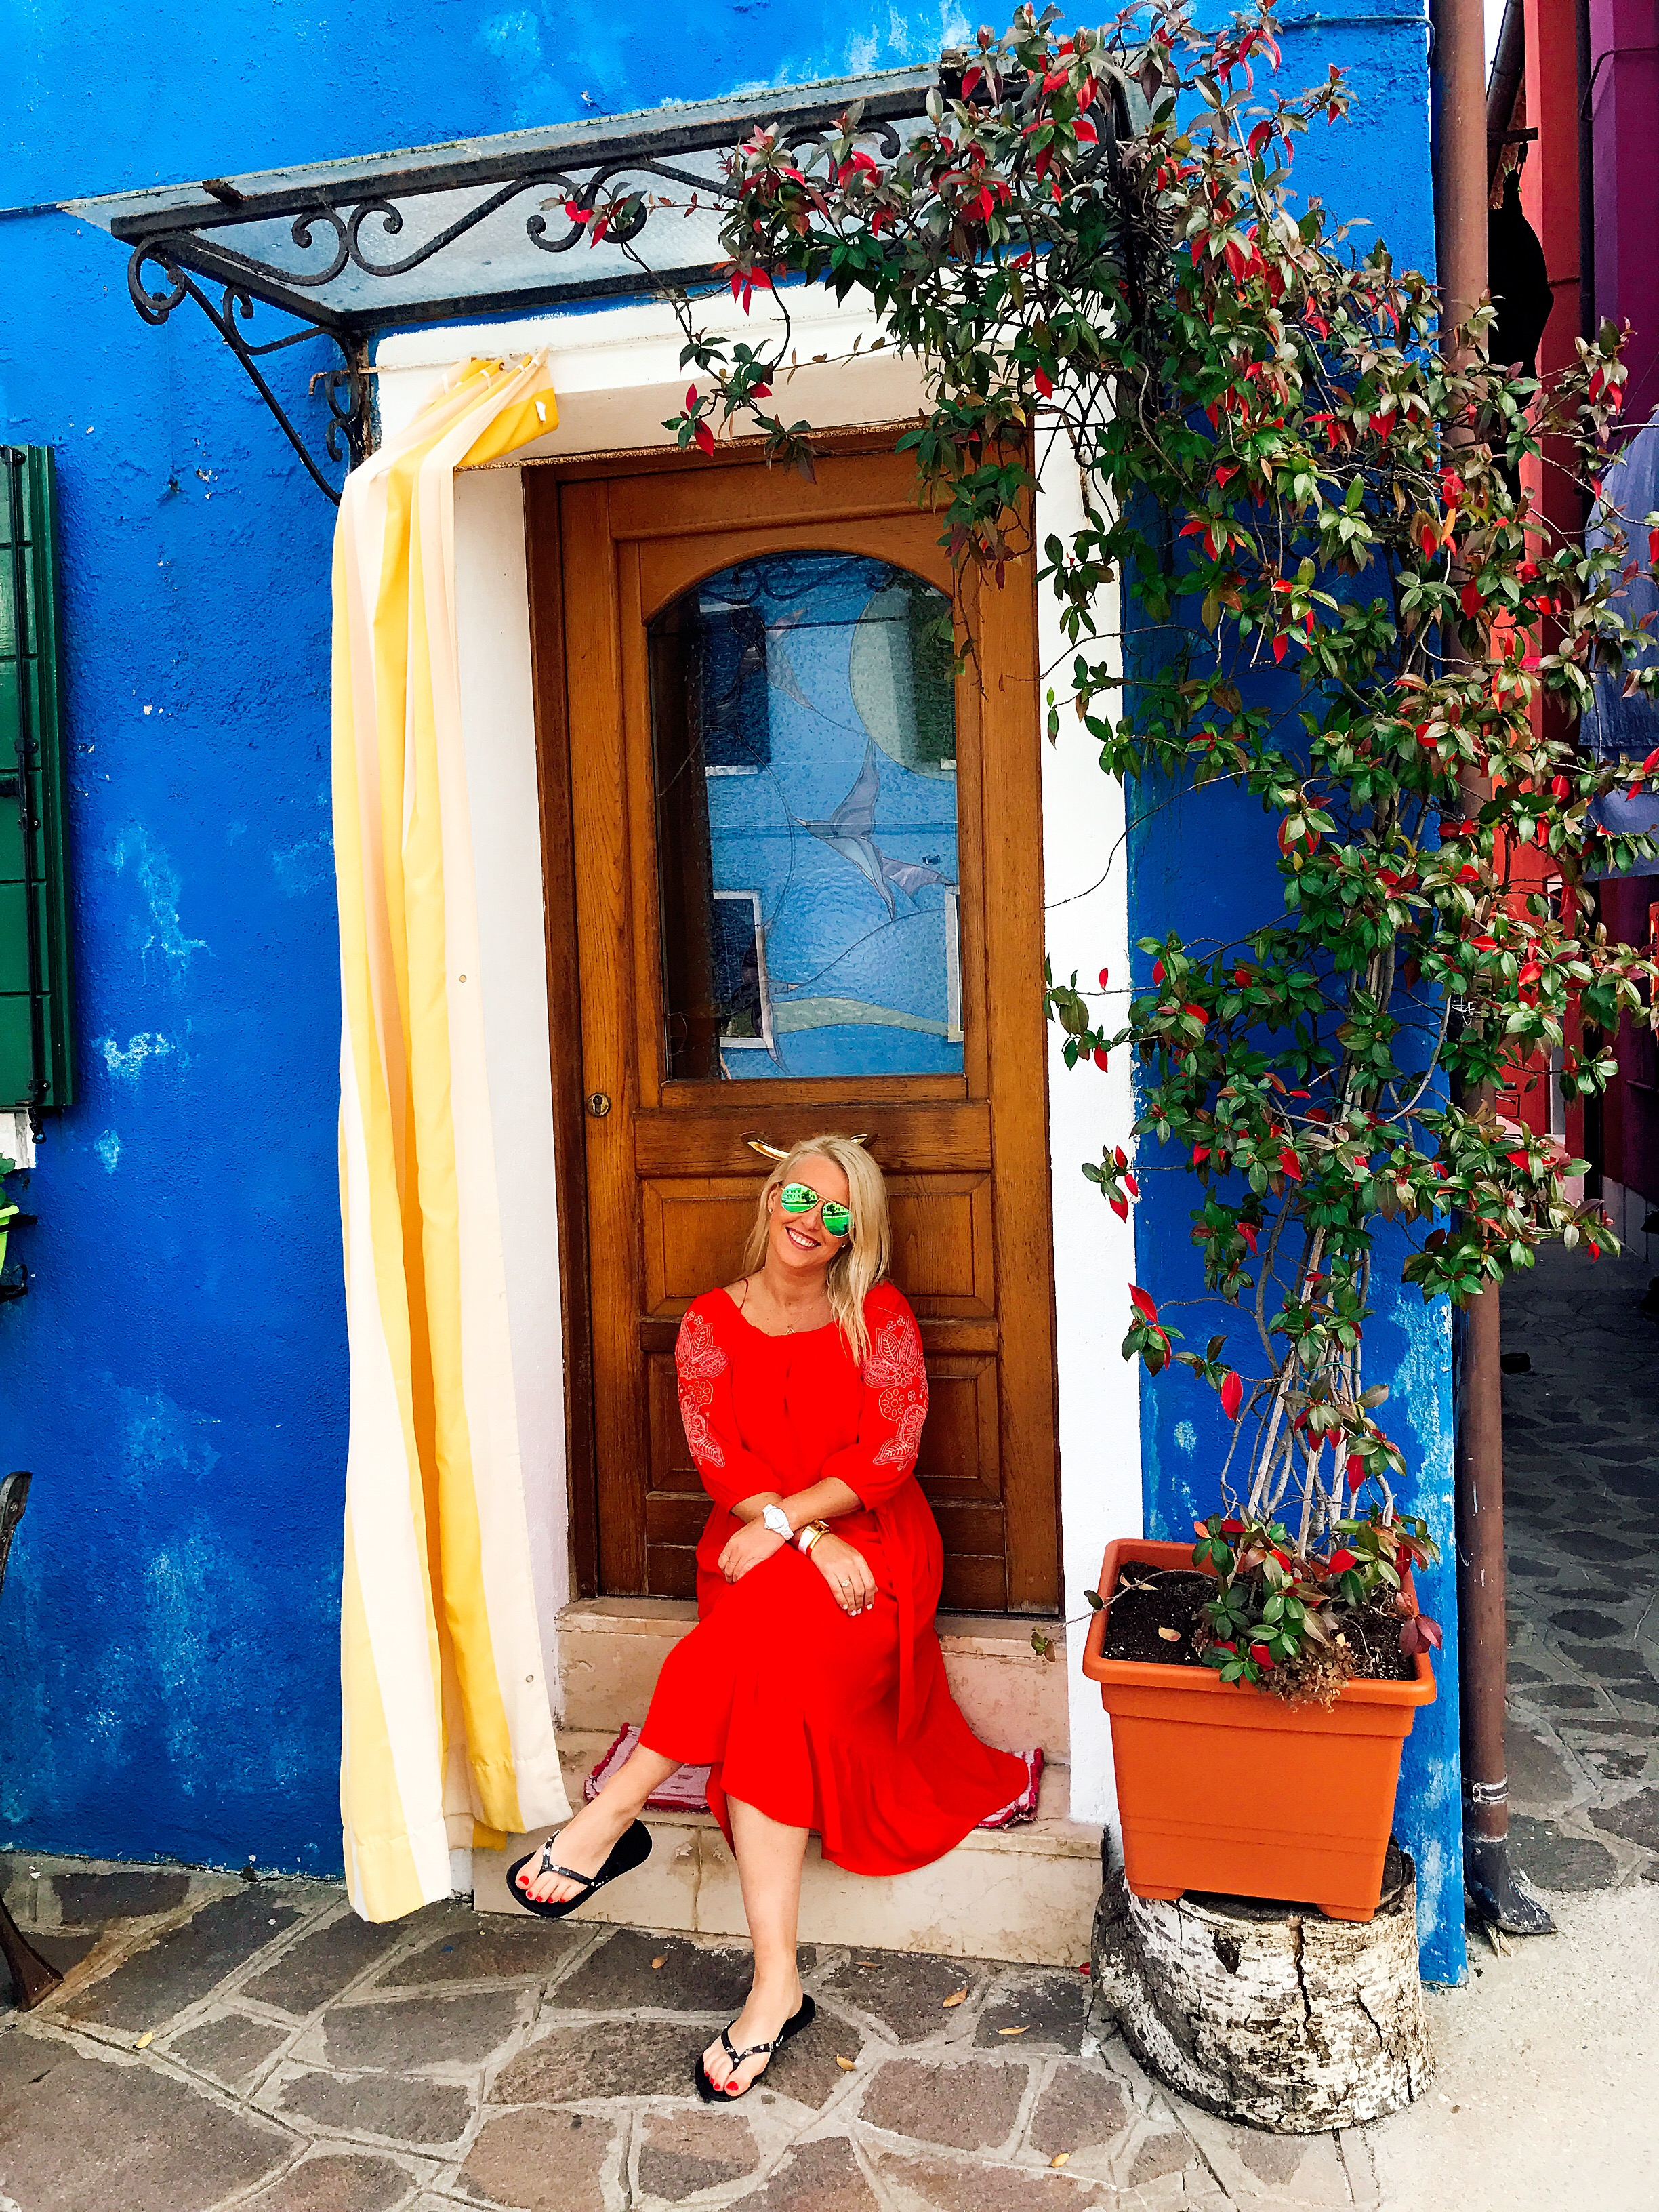 Burano: I feel quite certain people got tired of me taking photos in front of their doorways...whoops!